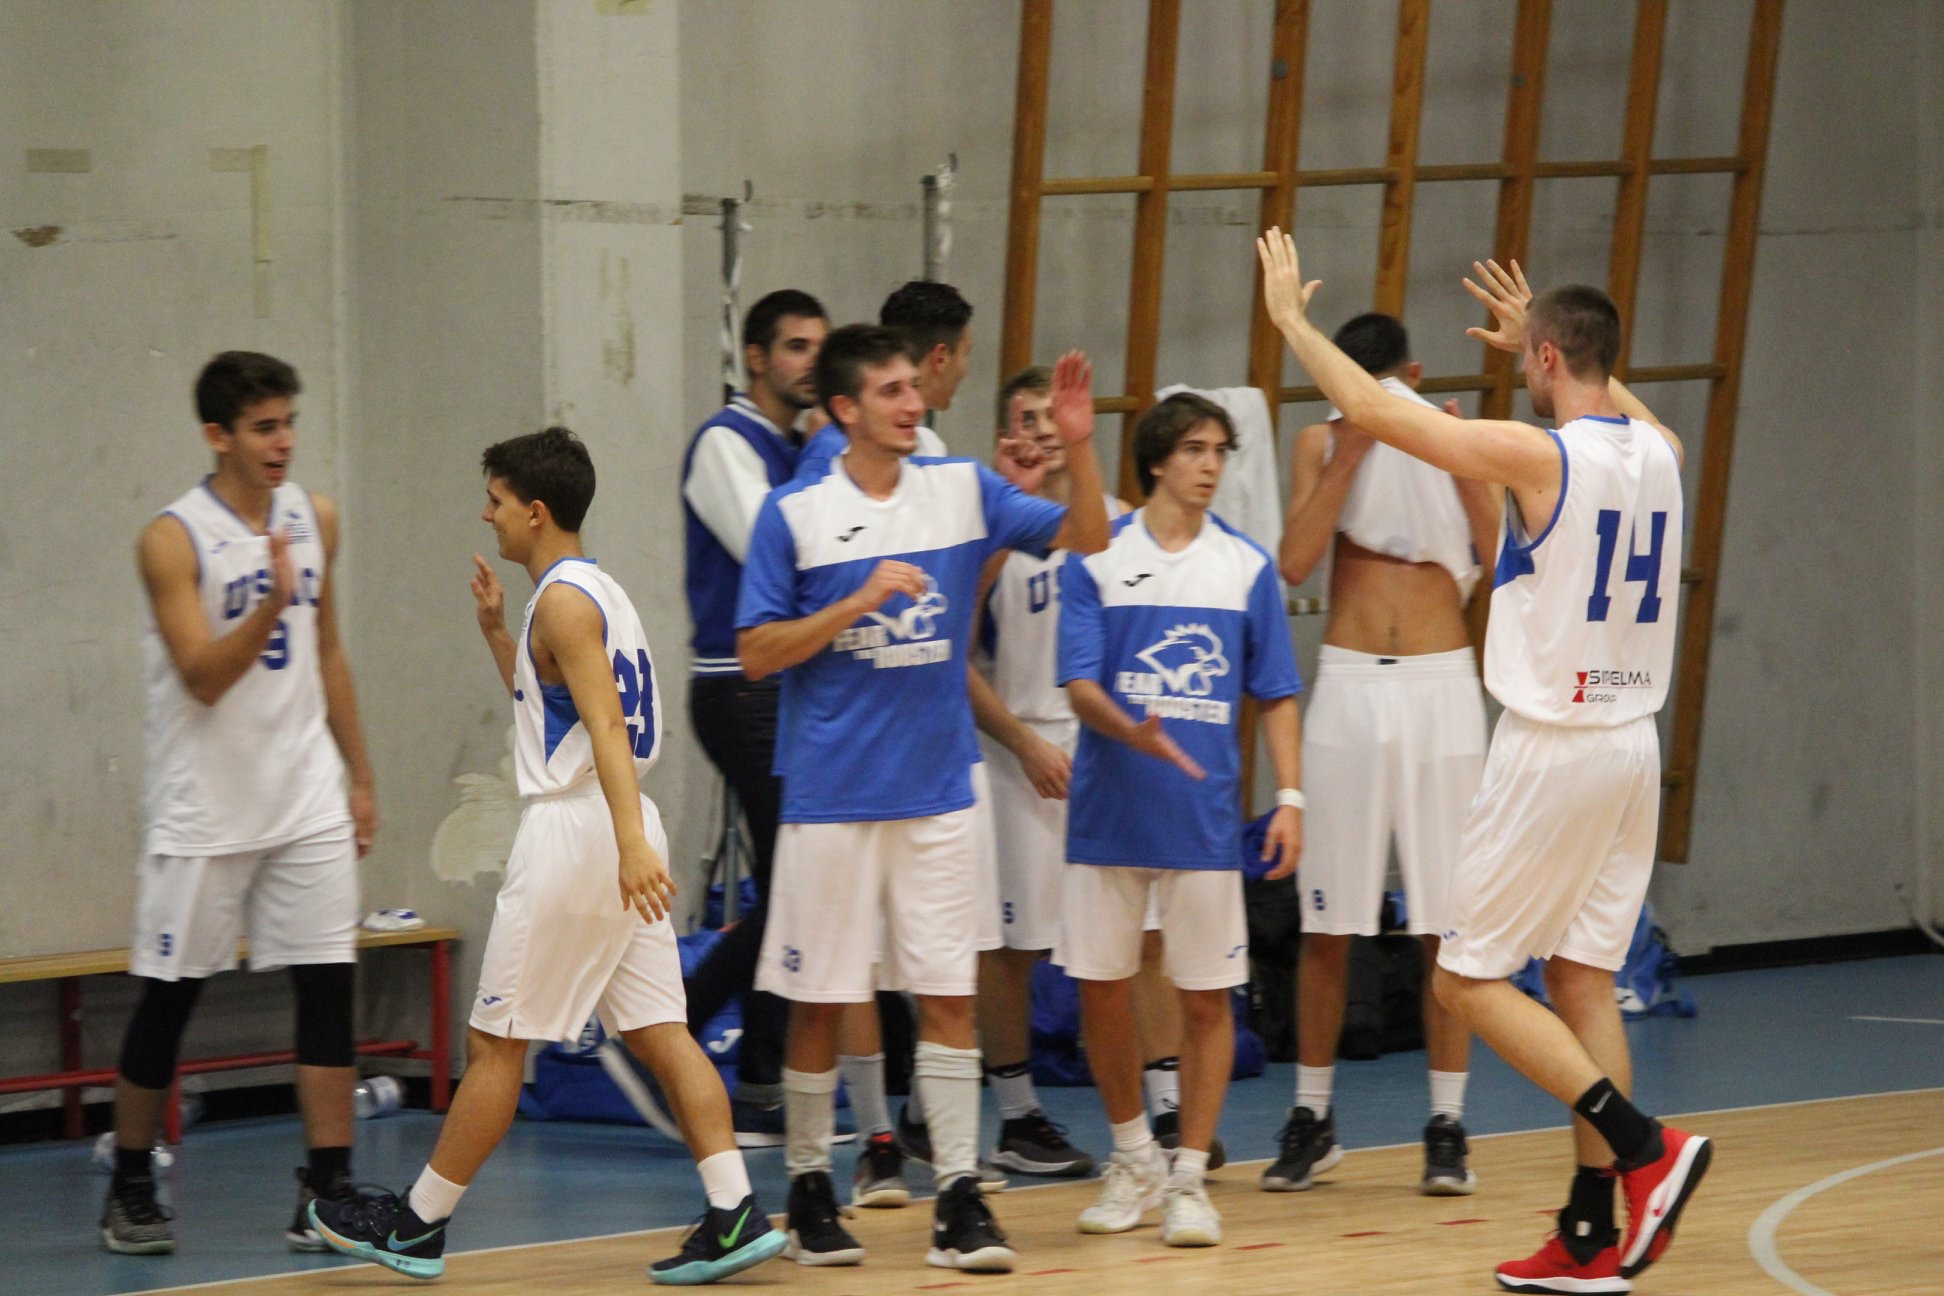 C SILVER: USAC 61 - VERCELLI RICES 52.